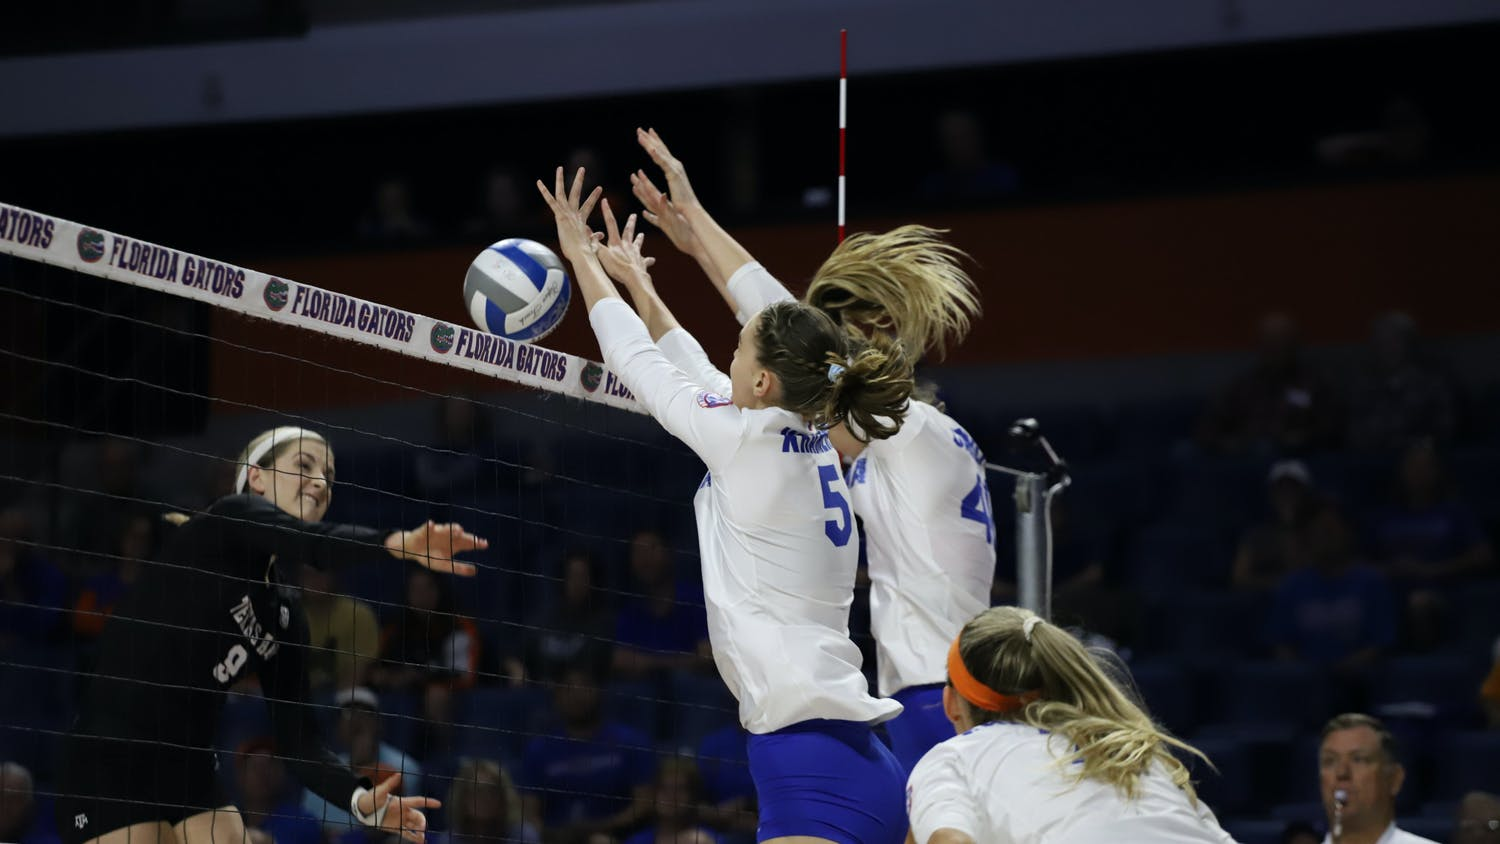 The Gators, with a 10-2 record, have now won five-straight matches. Photo from UF-Texas A&M game in 2019.